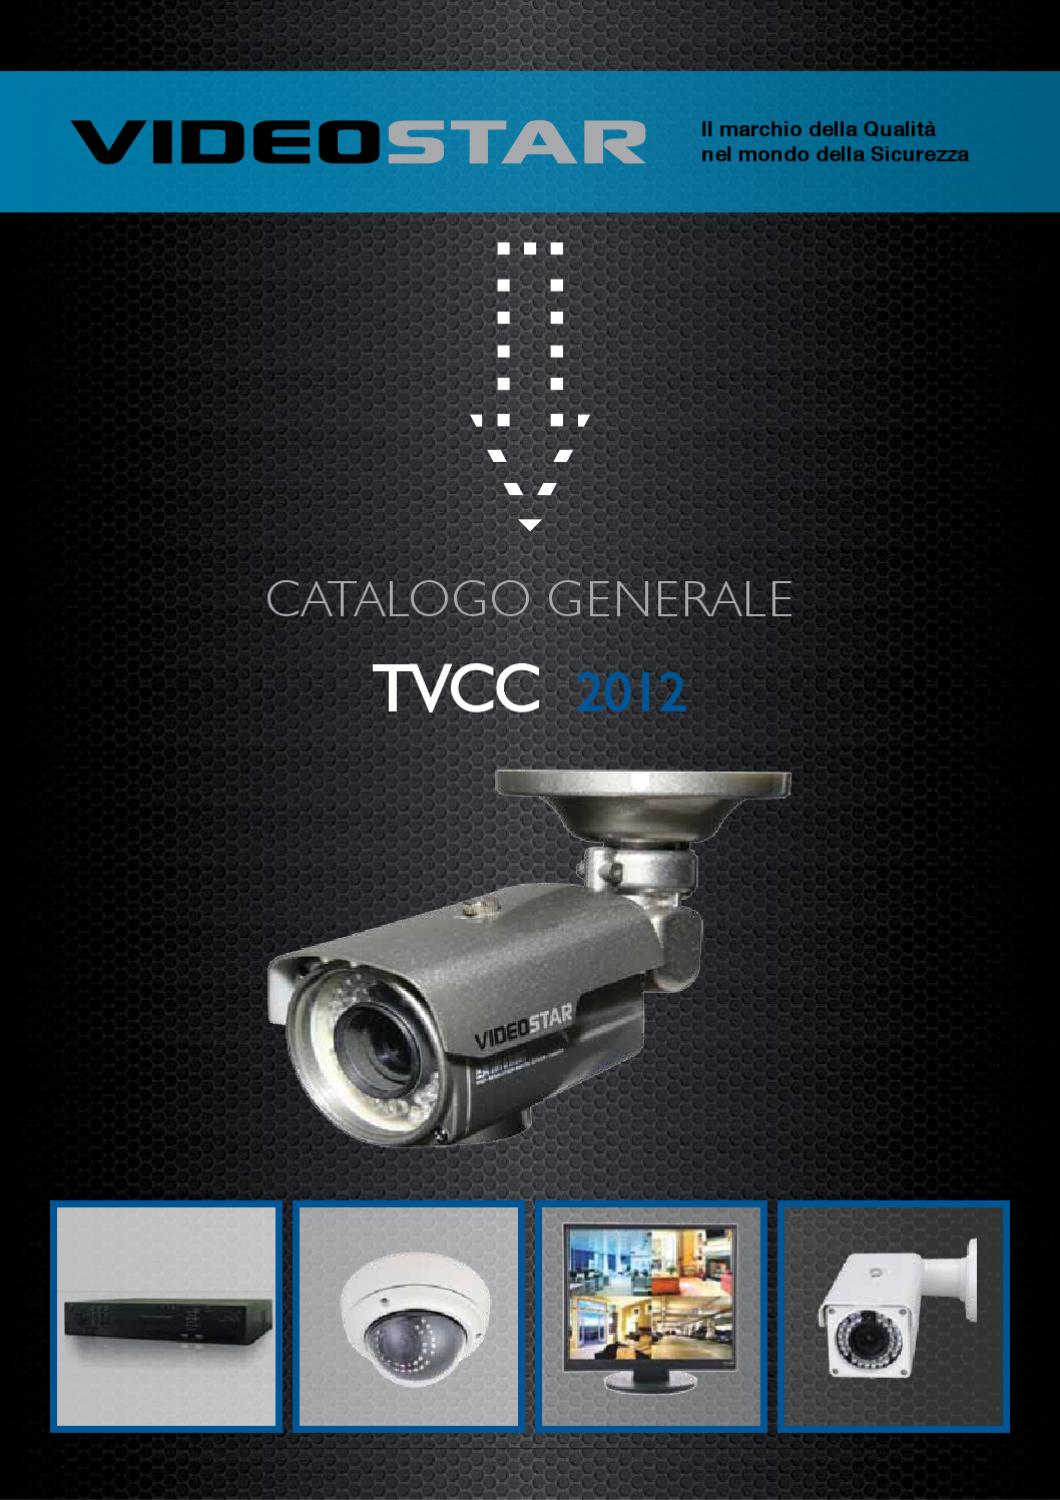 Videostar catalistino tvcc maggio 2012 by dat sas issuu for Catalogo bricoman misterbianco